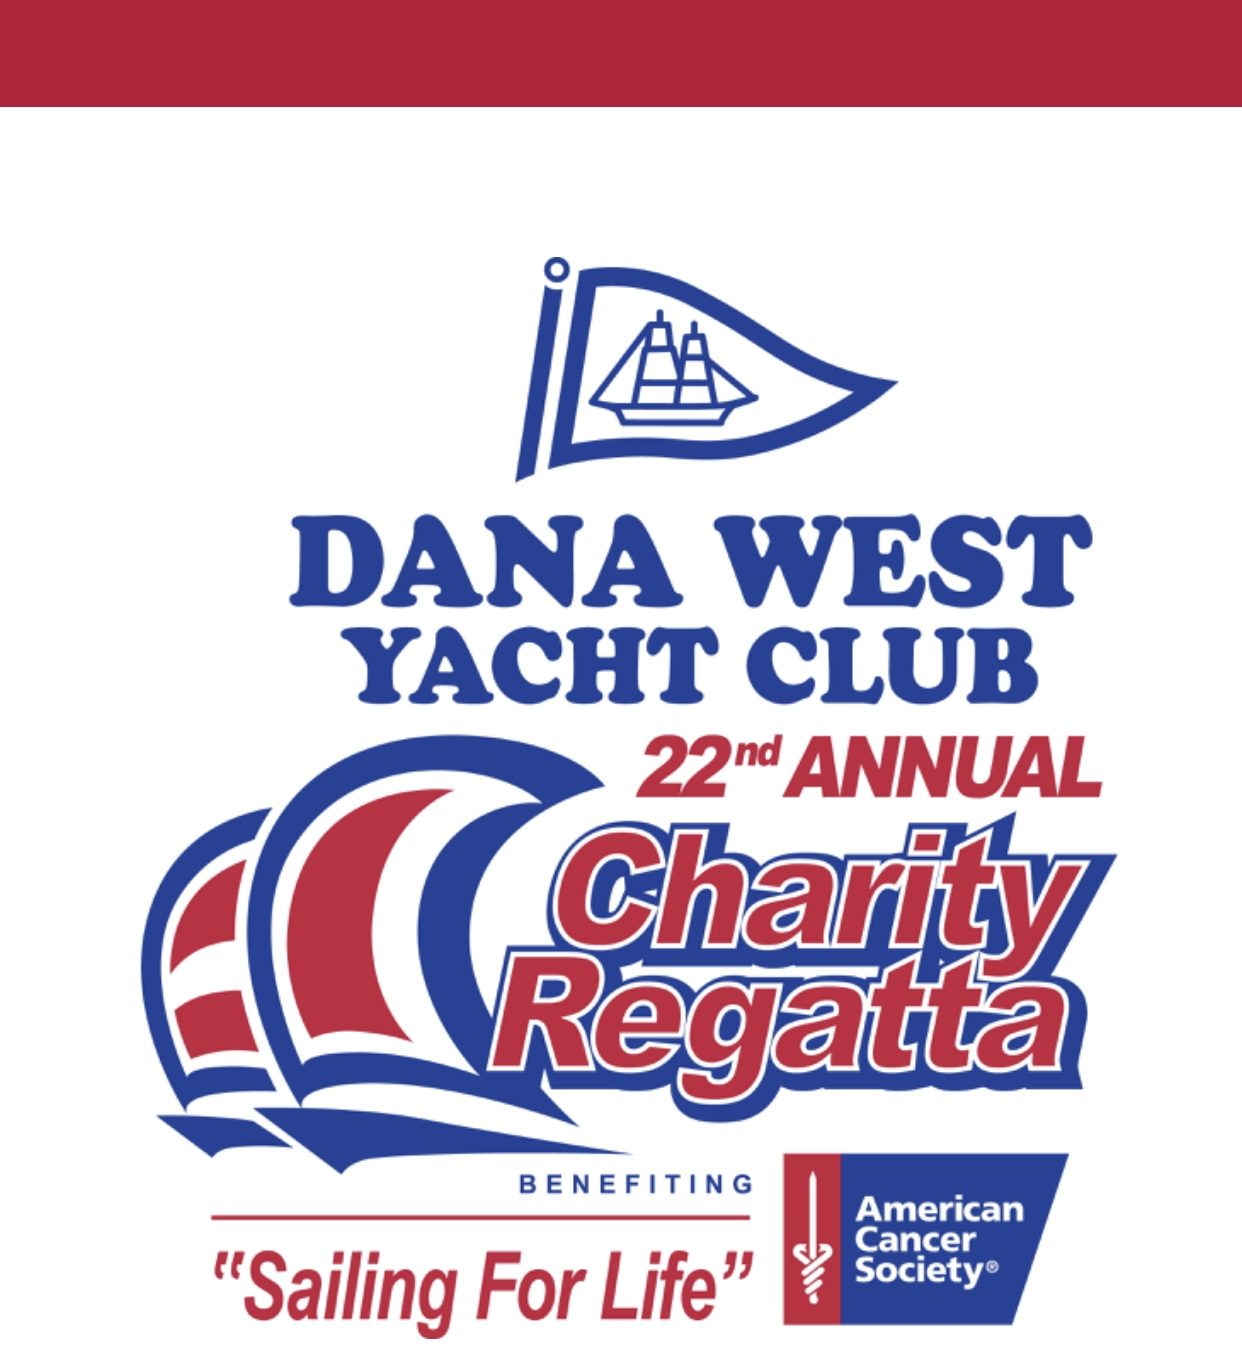 Dana West Yacht Club 22nd Annual Charity Regatta